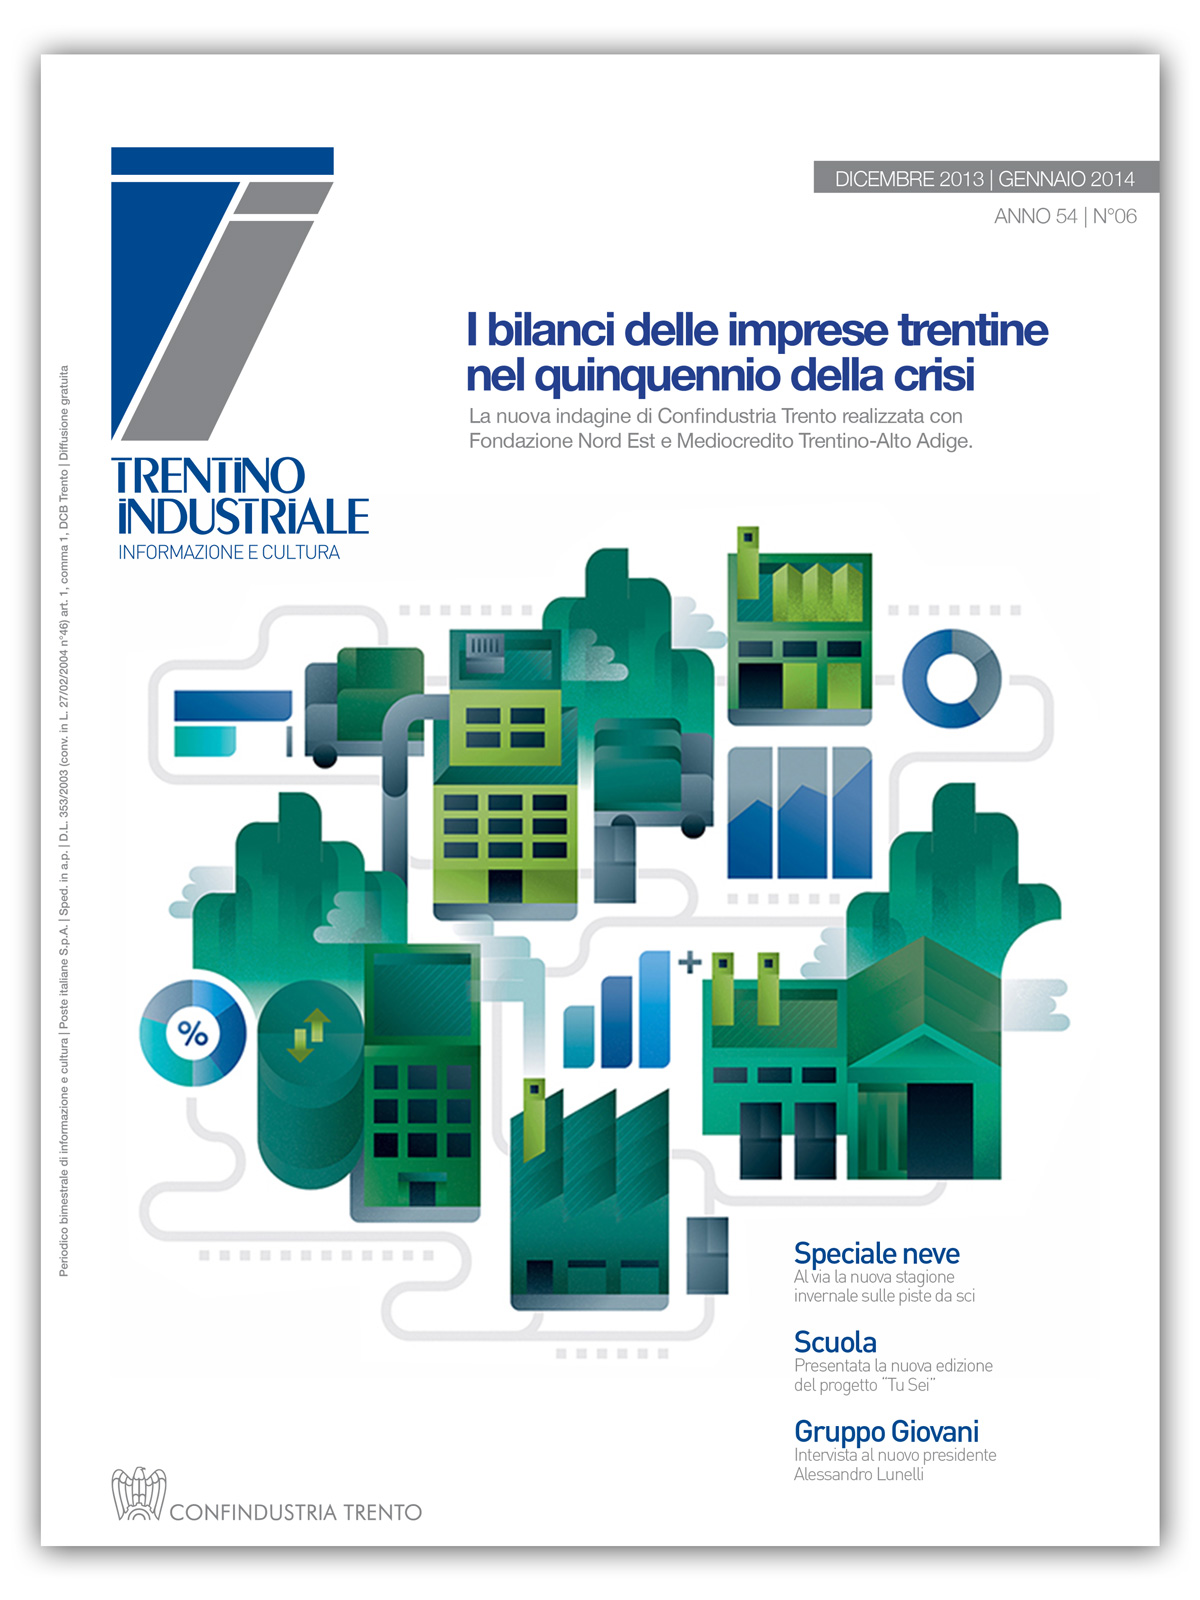 Cover image with an iconic representation of Trentino region of Italy with factories and industries and startups, illustration by Francesco Faggiano illustrator